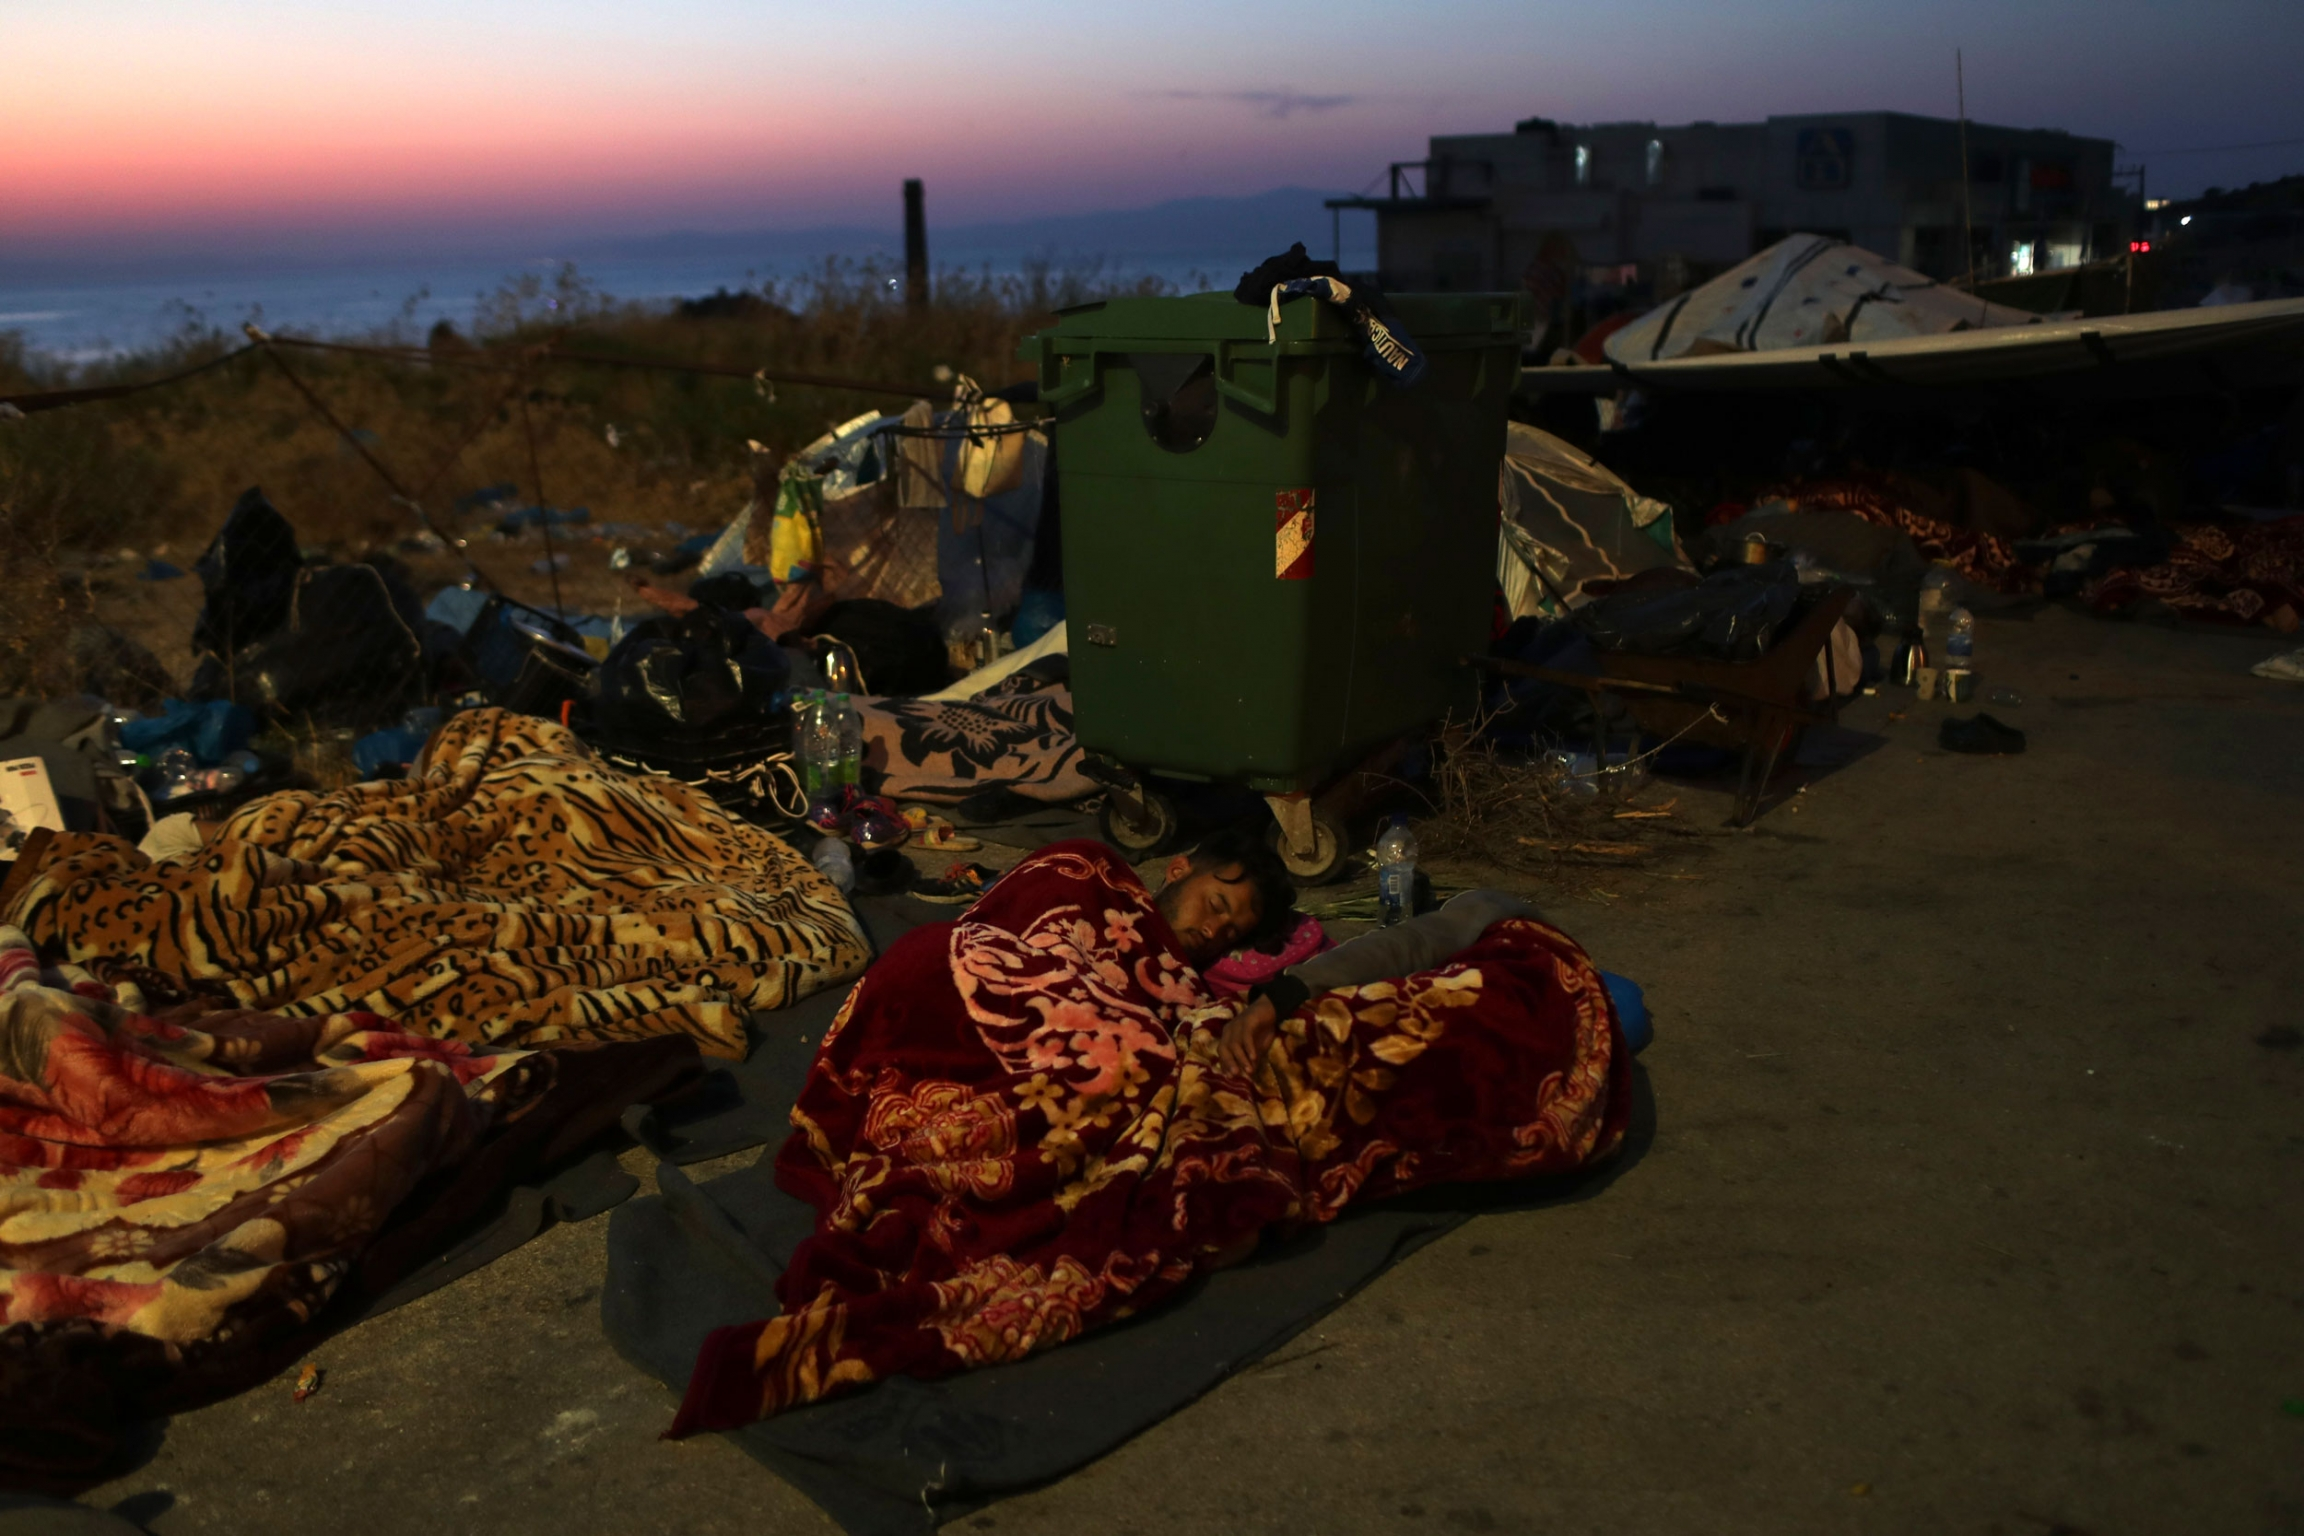 Several migrants and refugees are shown sleeping under blankets on the side of a road with a green trash bin with wheels nearby.